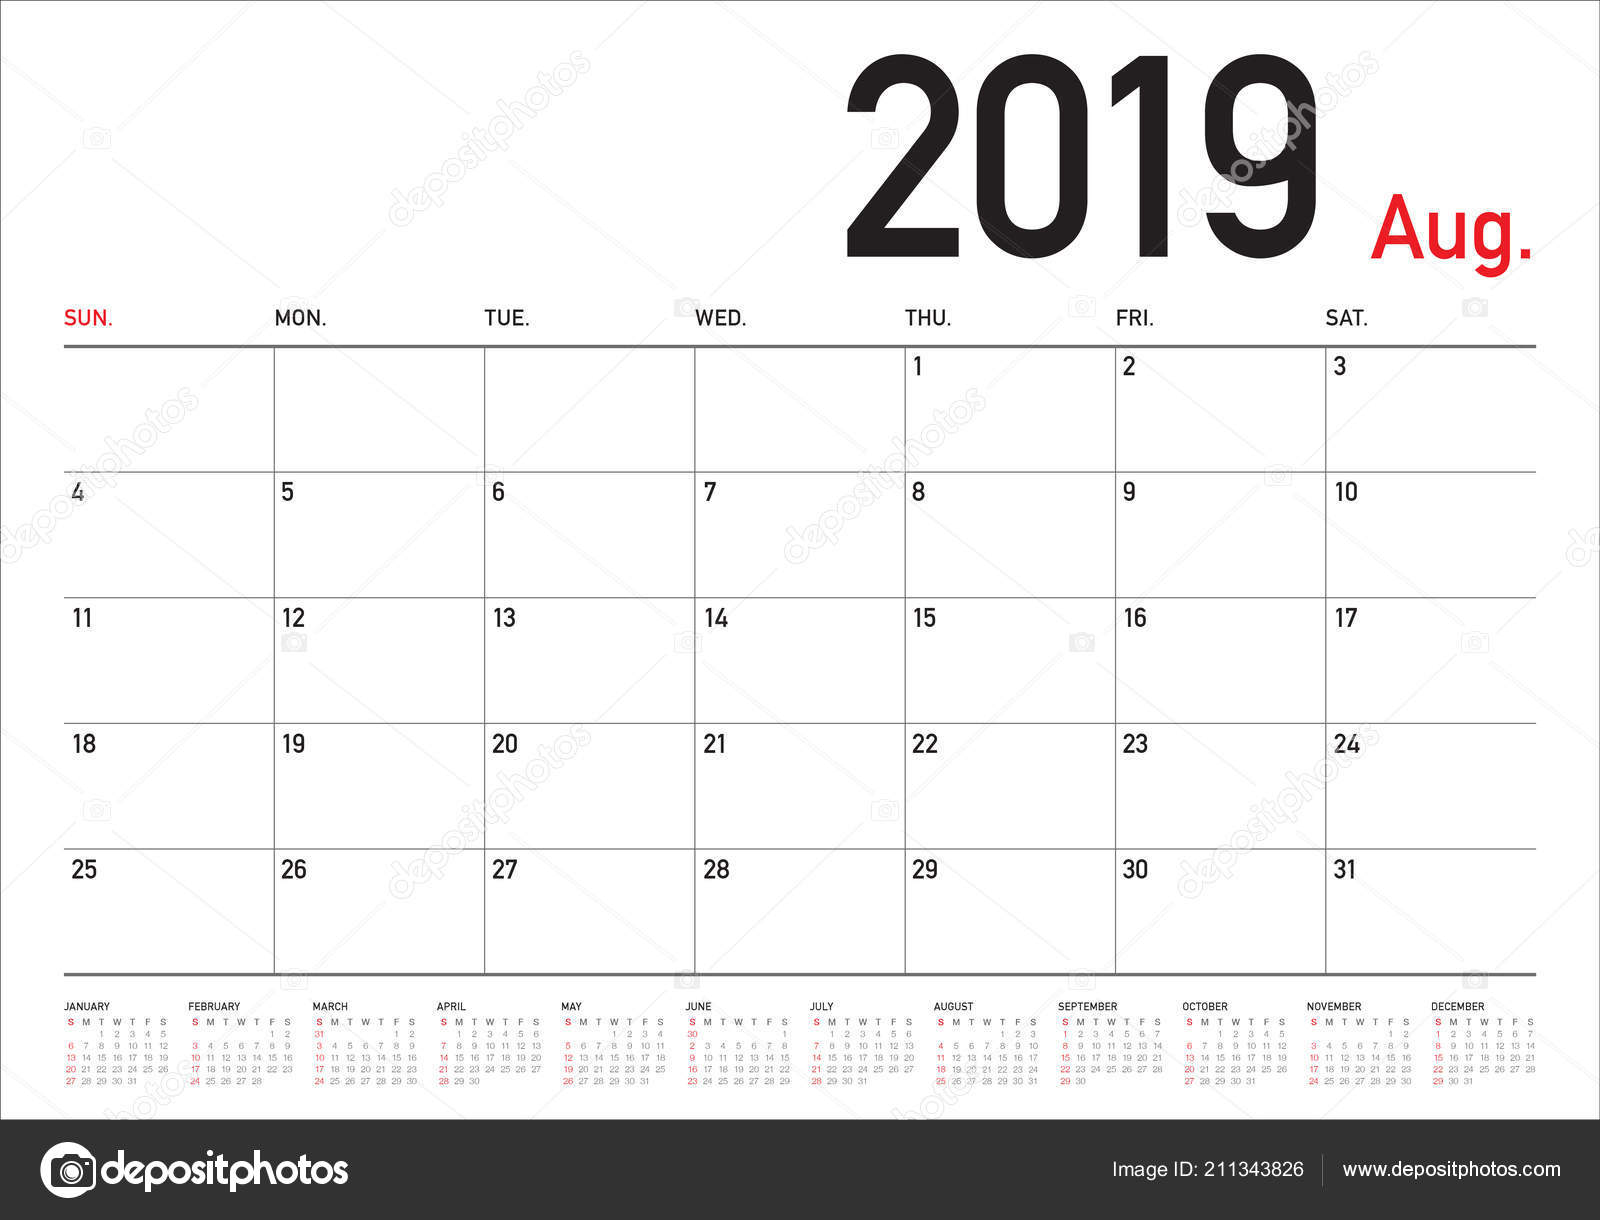 Calendrier Aout2019.Illustration Vecteur Calendrier Bureau Aout 2019 Conception